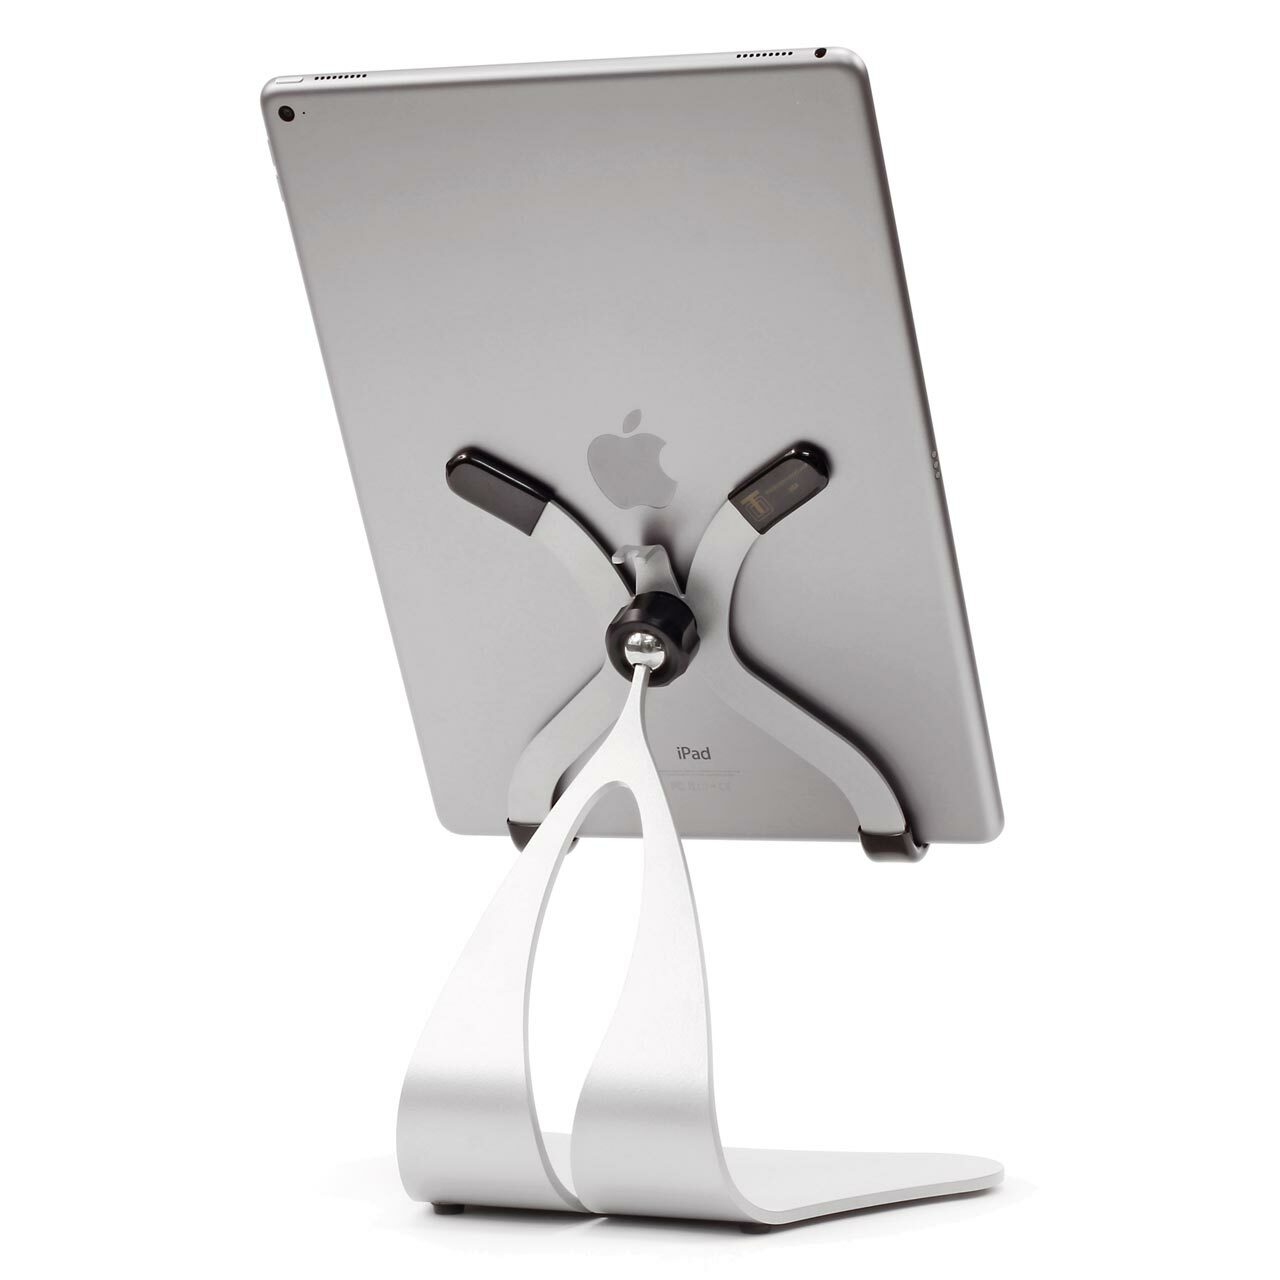 Stabile PRO - Pivoting iPad Stand Silver shown with iPad Pro 12.9